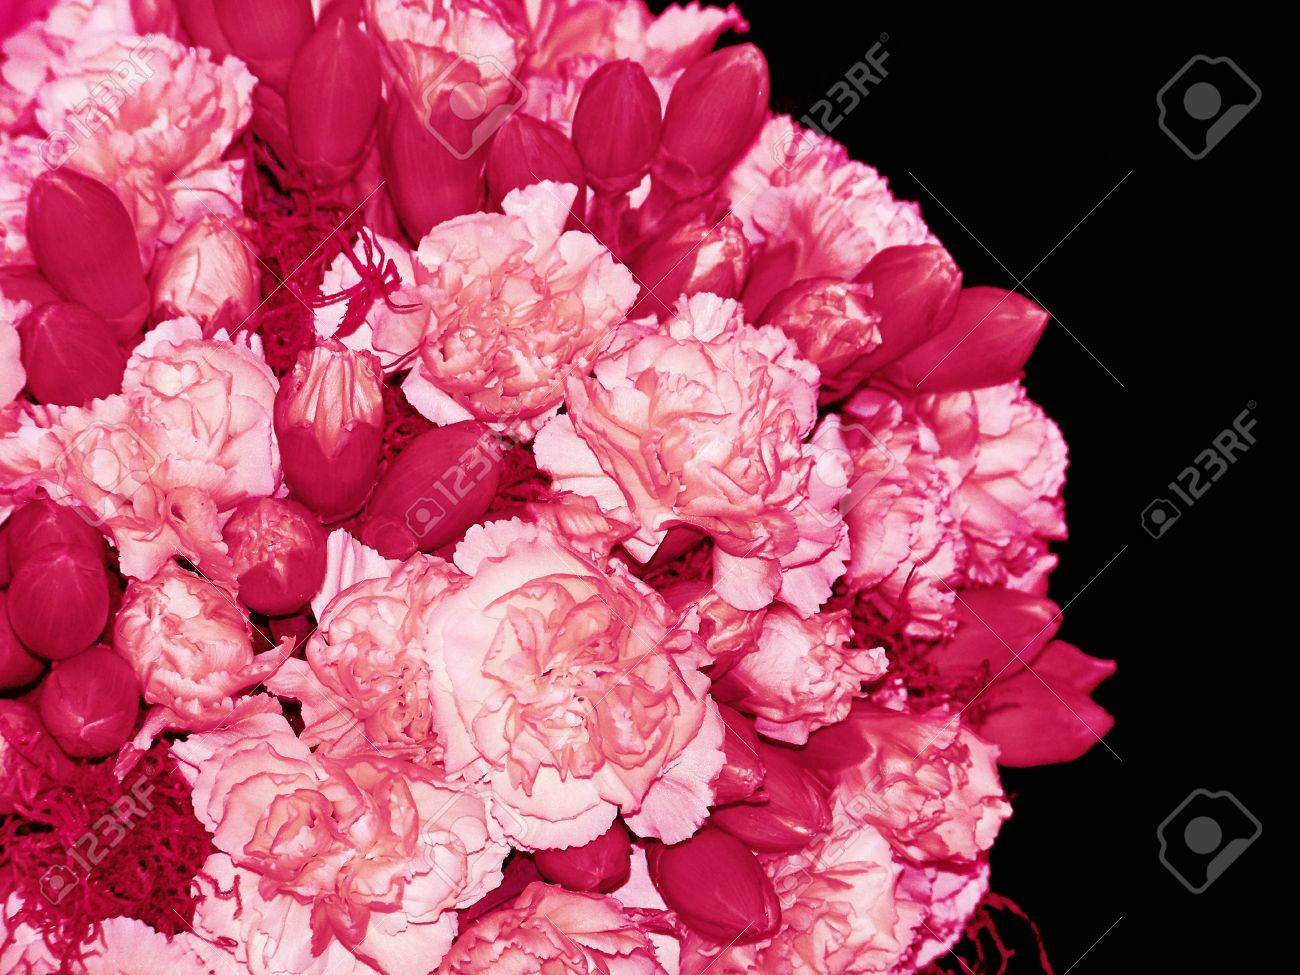 Valentines Pink Bunch Of Flowers On An Spheric Isolated Bouquet